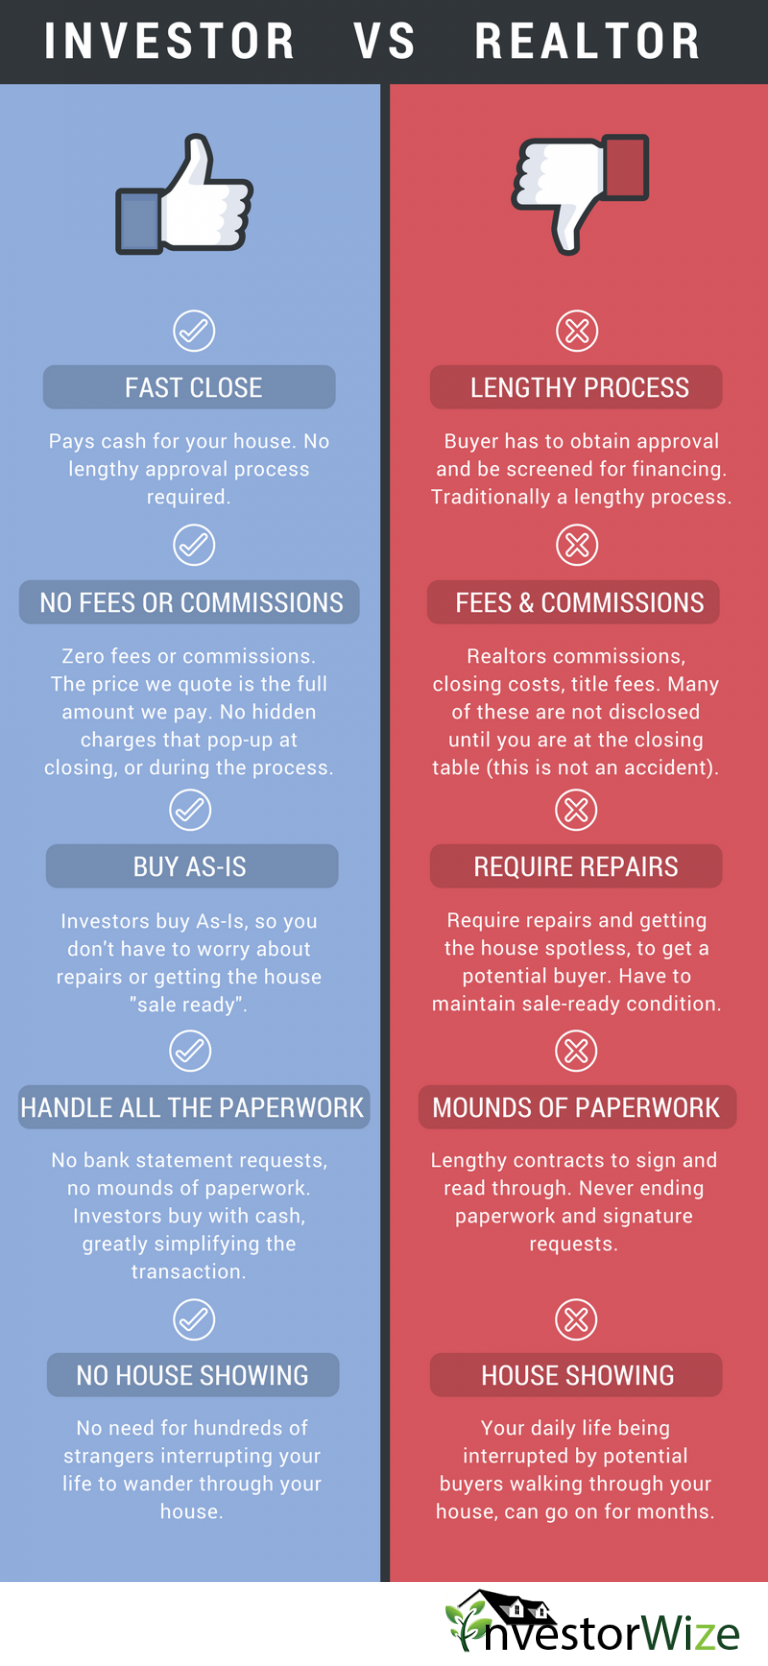 Chosing a realtor vs an investor